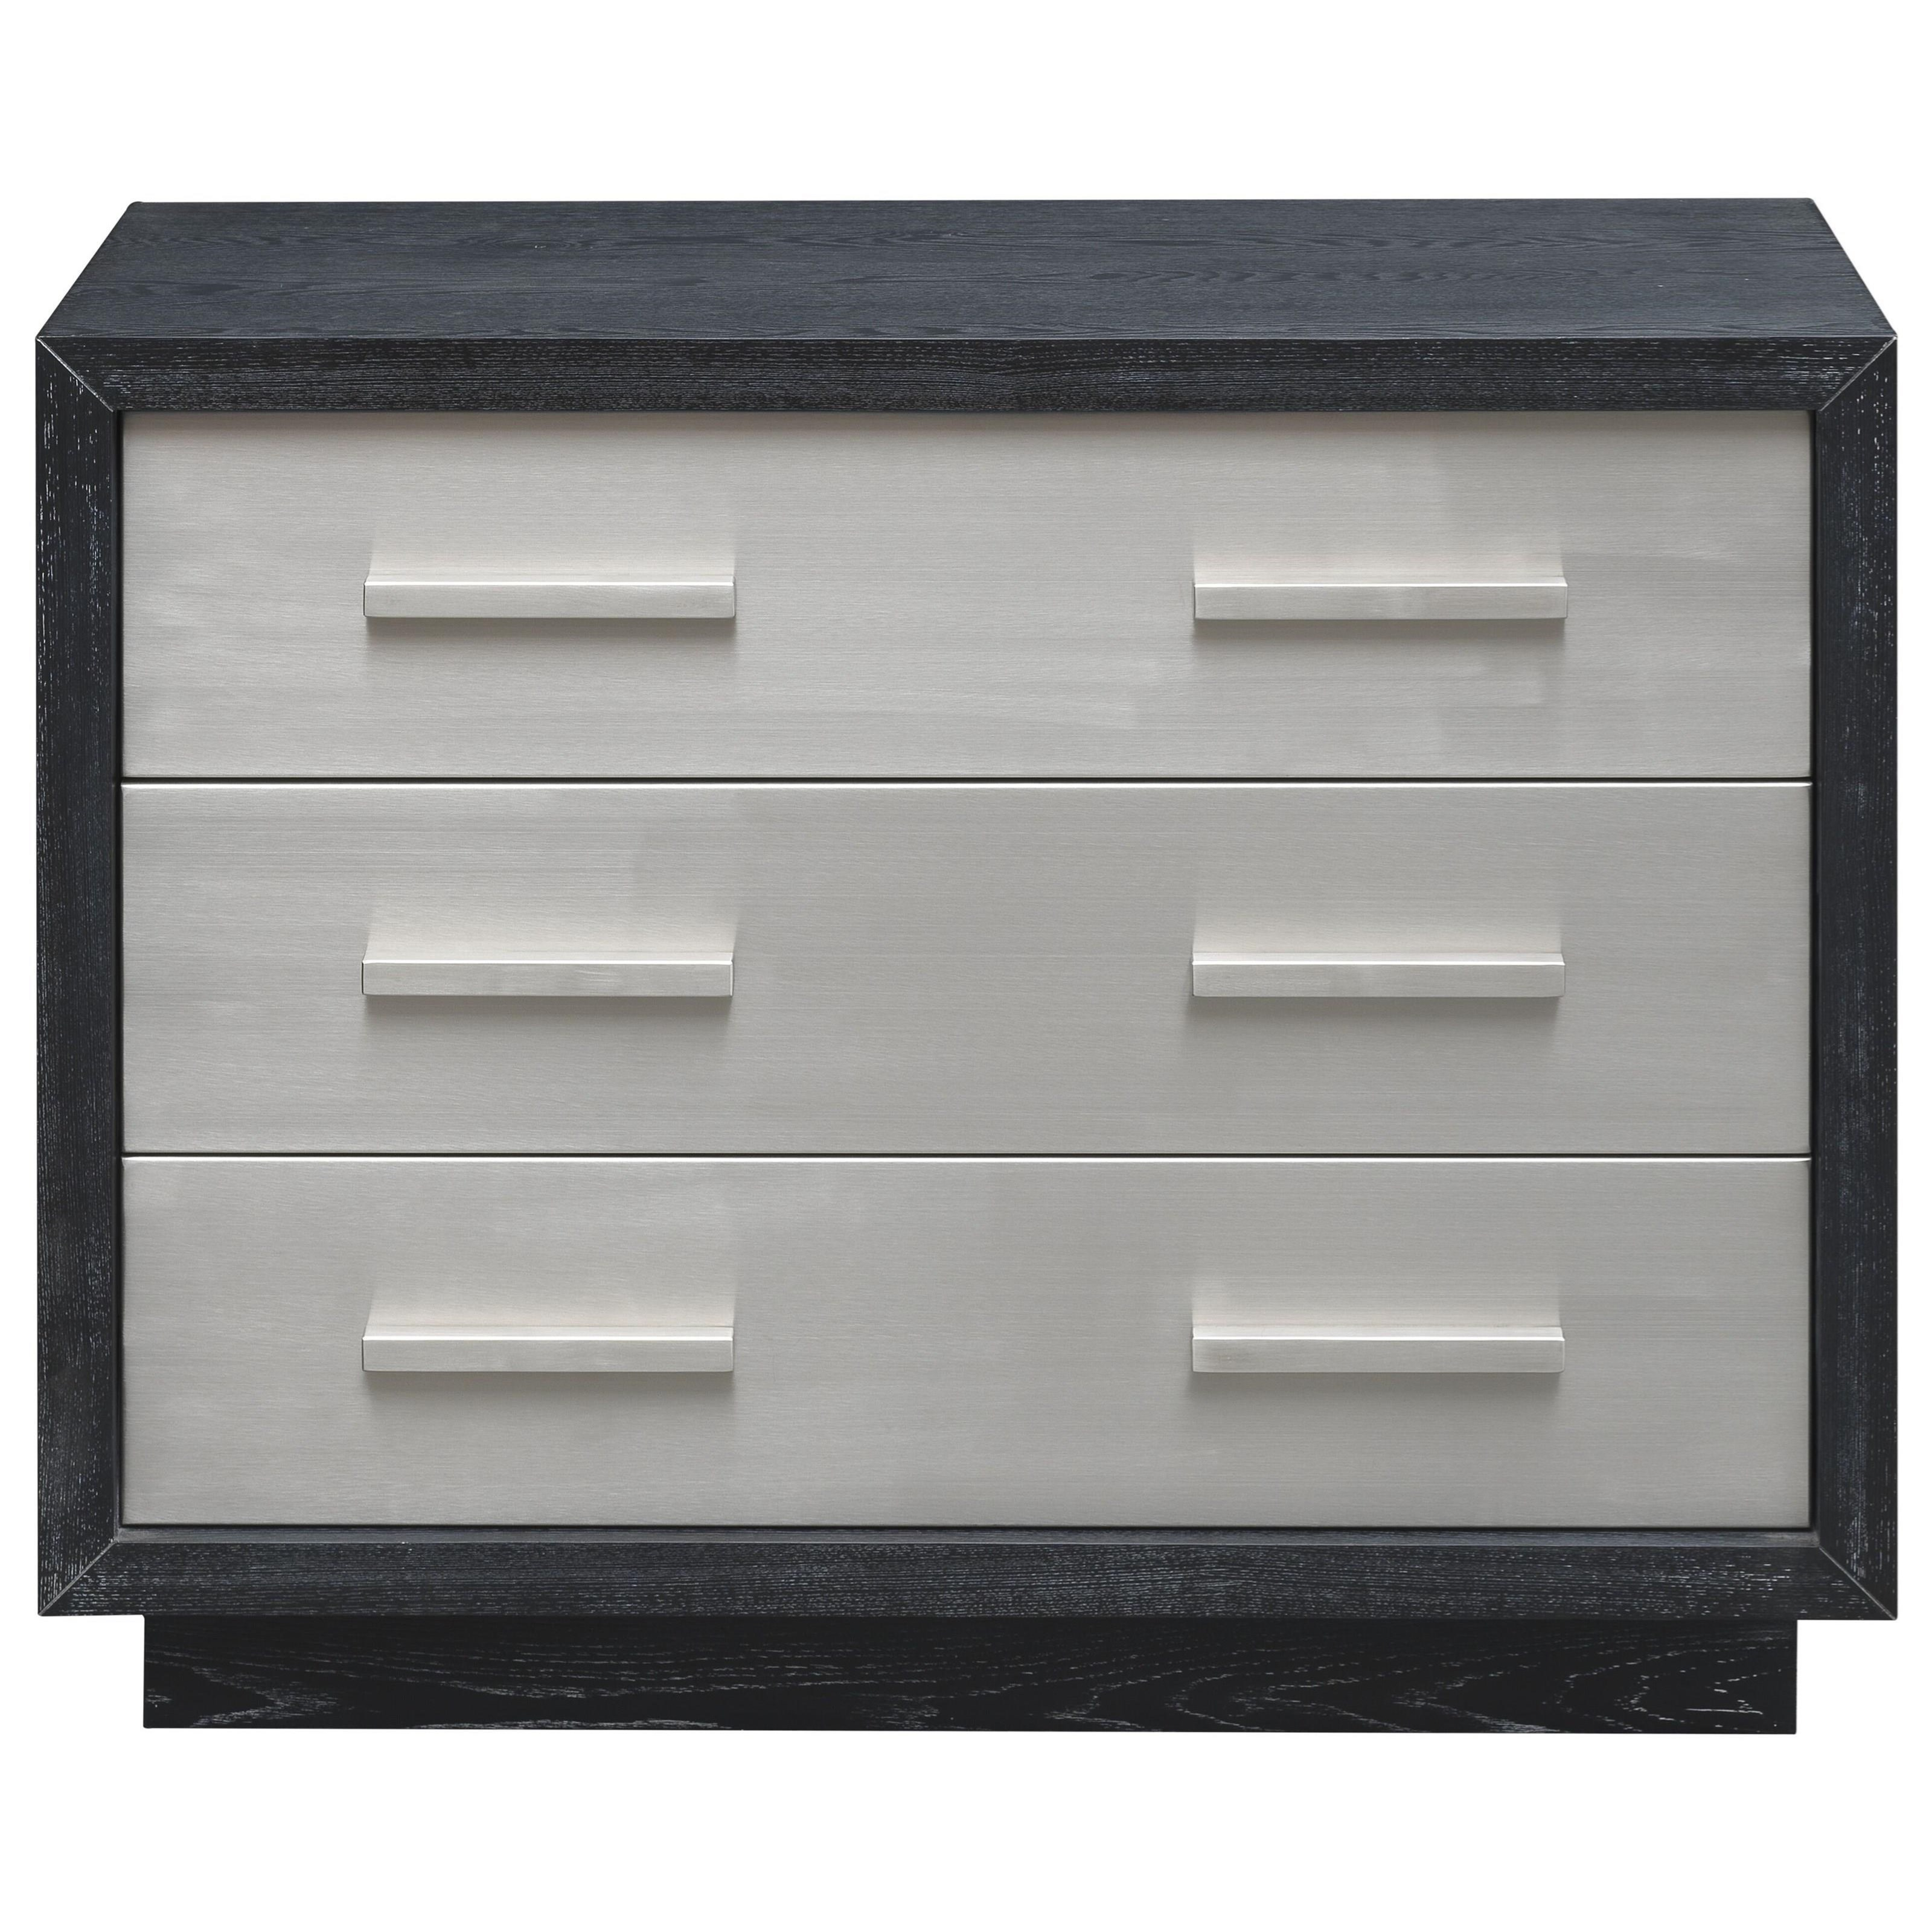 40210 3-Drawer Accent Chest by Coast to Coast Imports at Esprit Decor Home Furnishings